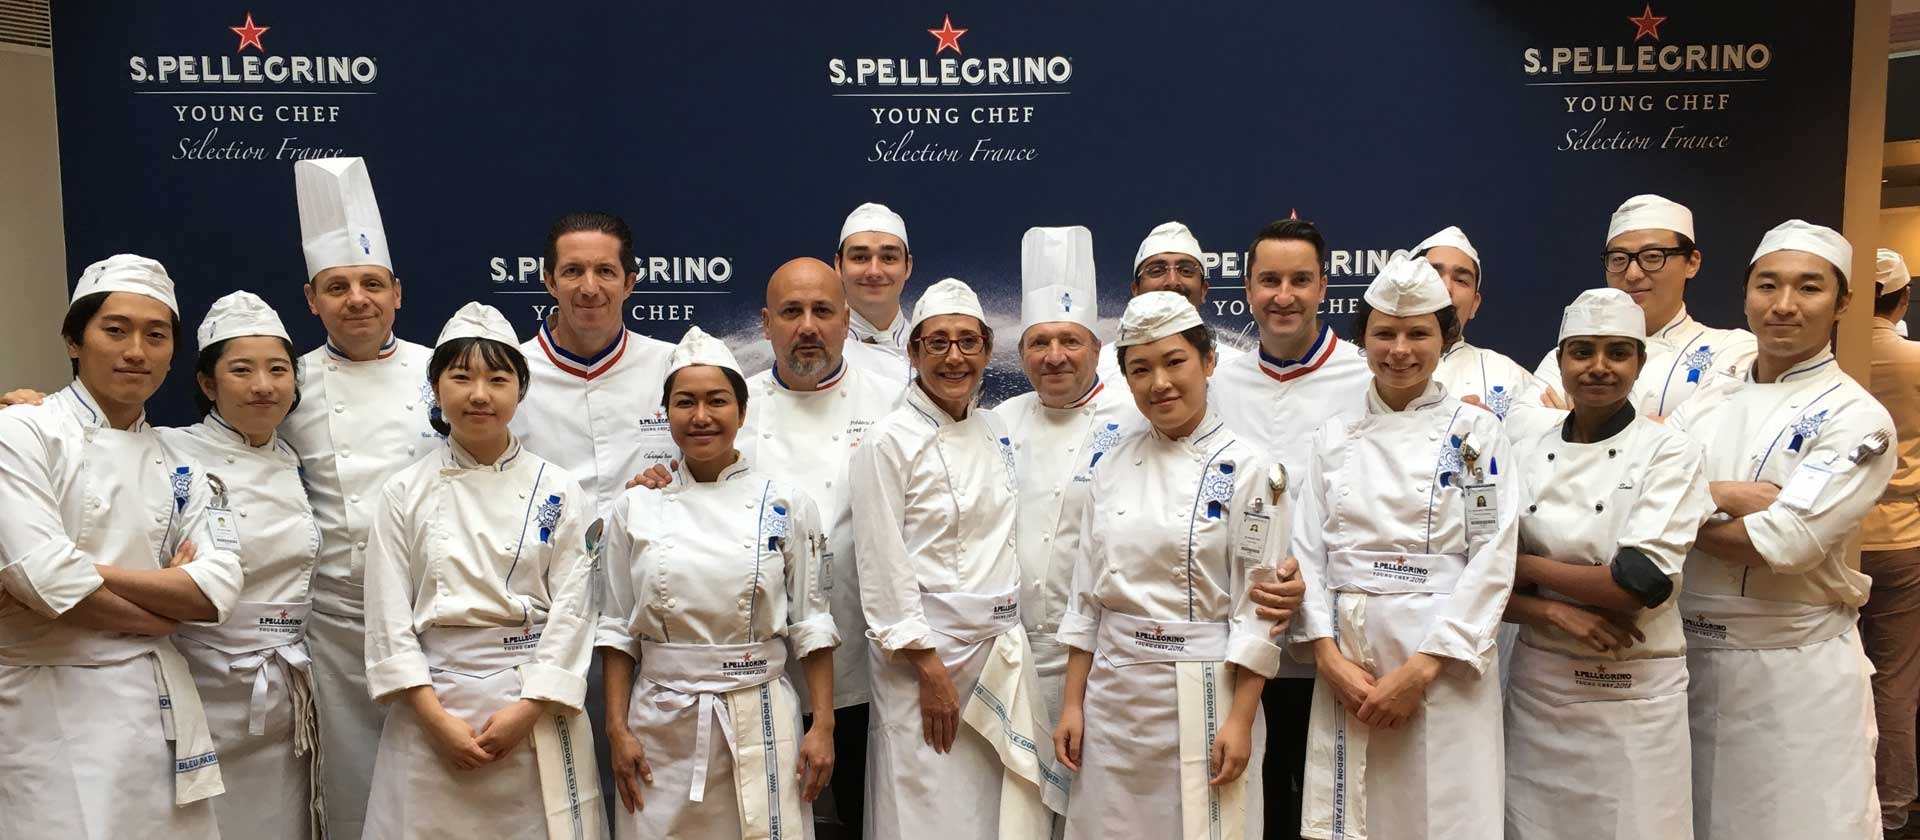 Antonio Buono wins the French final of the S.PELLEGRINO® YOUNG CHEF 2018 competition at Le Cordon Bleu Paris institute